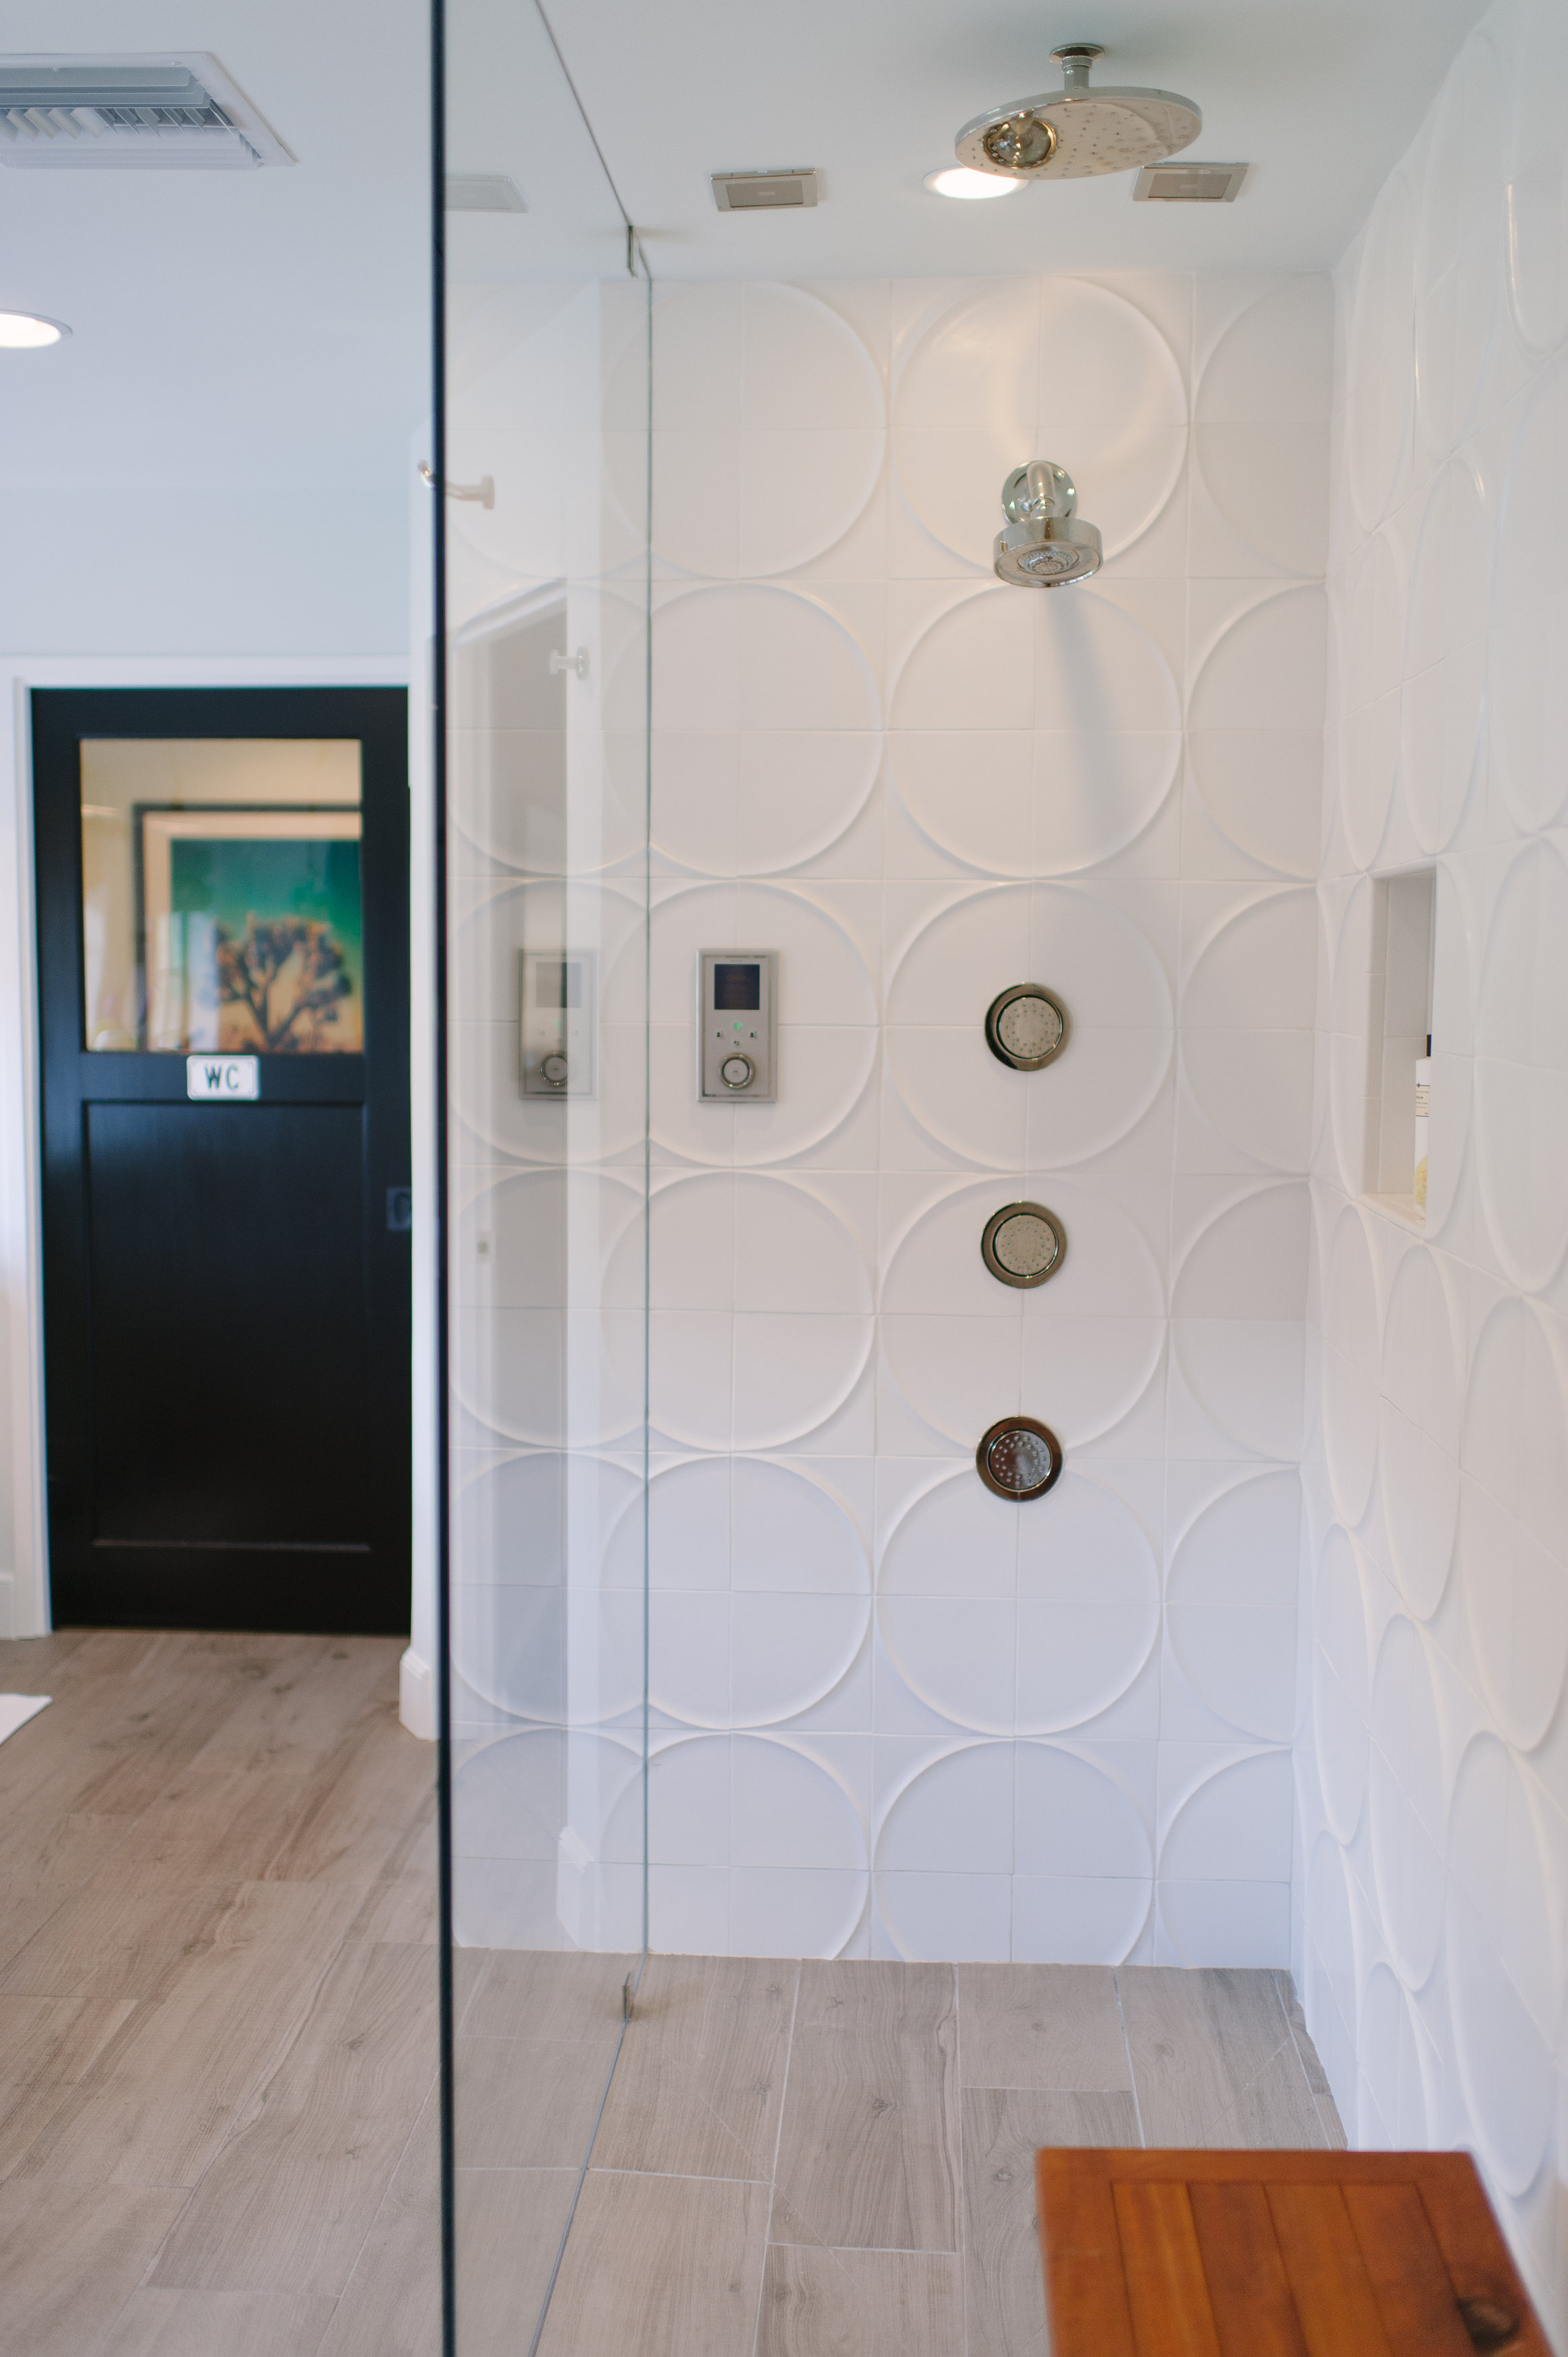 WaterTile Bodysprays   Round rainhead   Purist showerhead   Ann Sacks wall tile    The shower is simple yet luxurious, with graphic circle wall tile, two showerheads, and a trio of bodysprays.